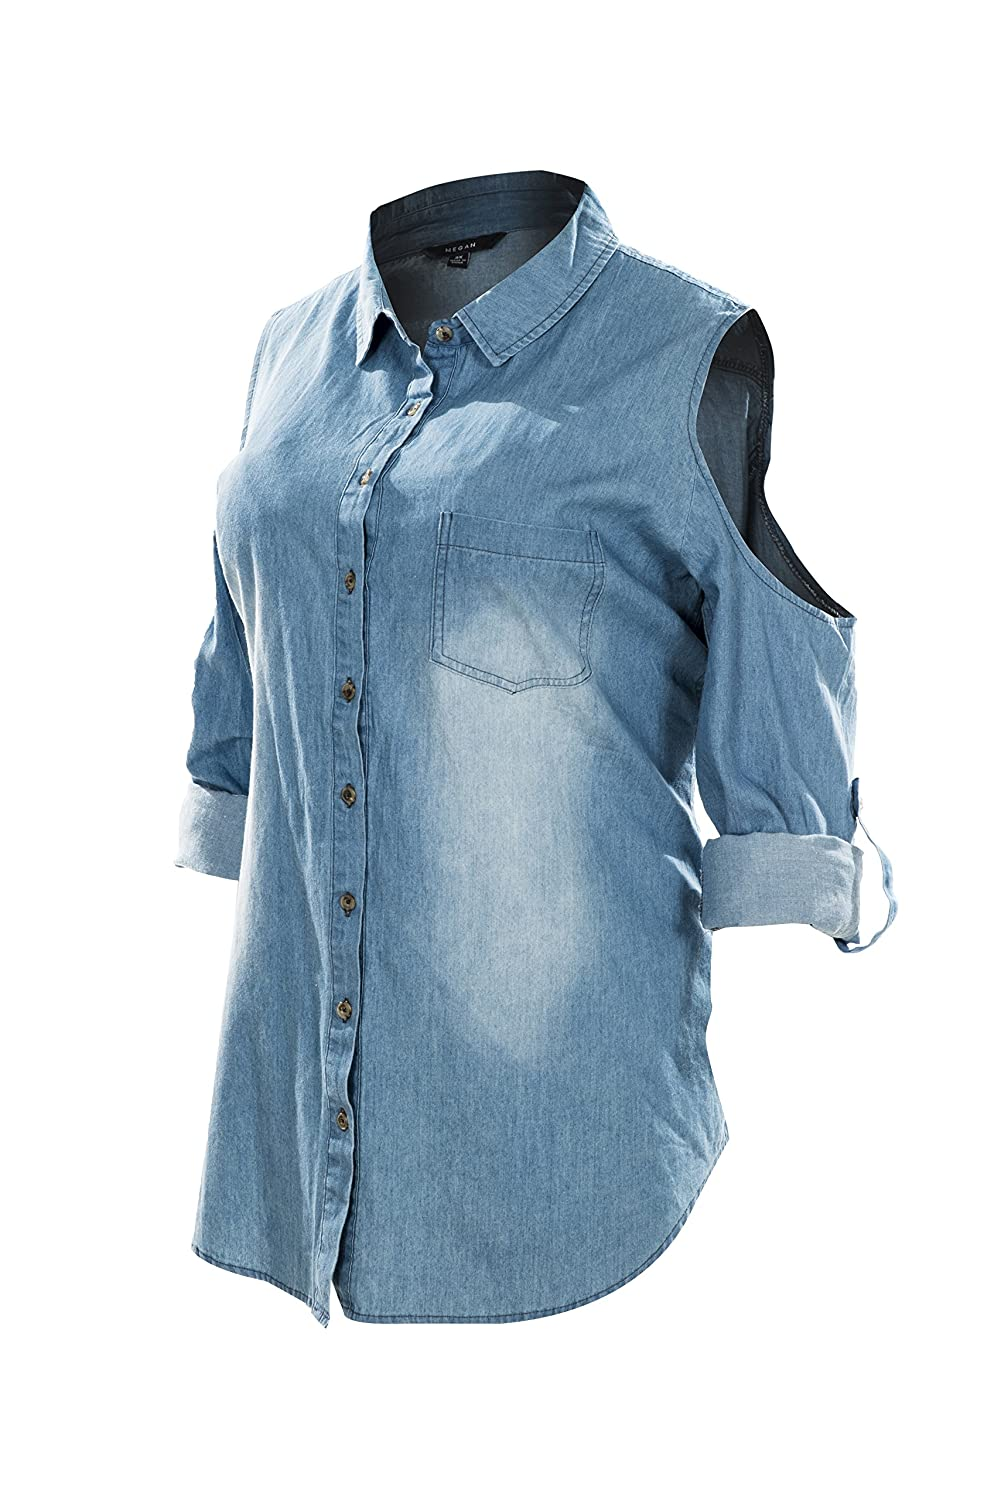 Megan apparel Women's Cut Out Shoulder Roll up Long Sleeve Washed Denim Shirts Plus Size MT1004